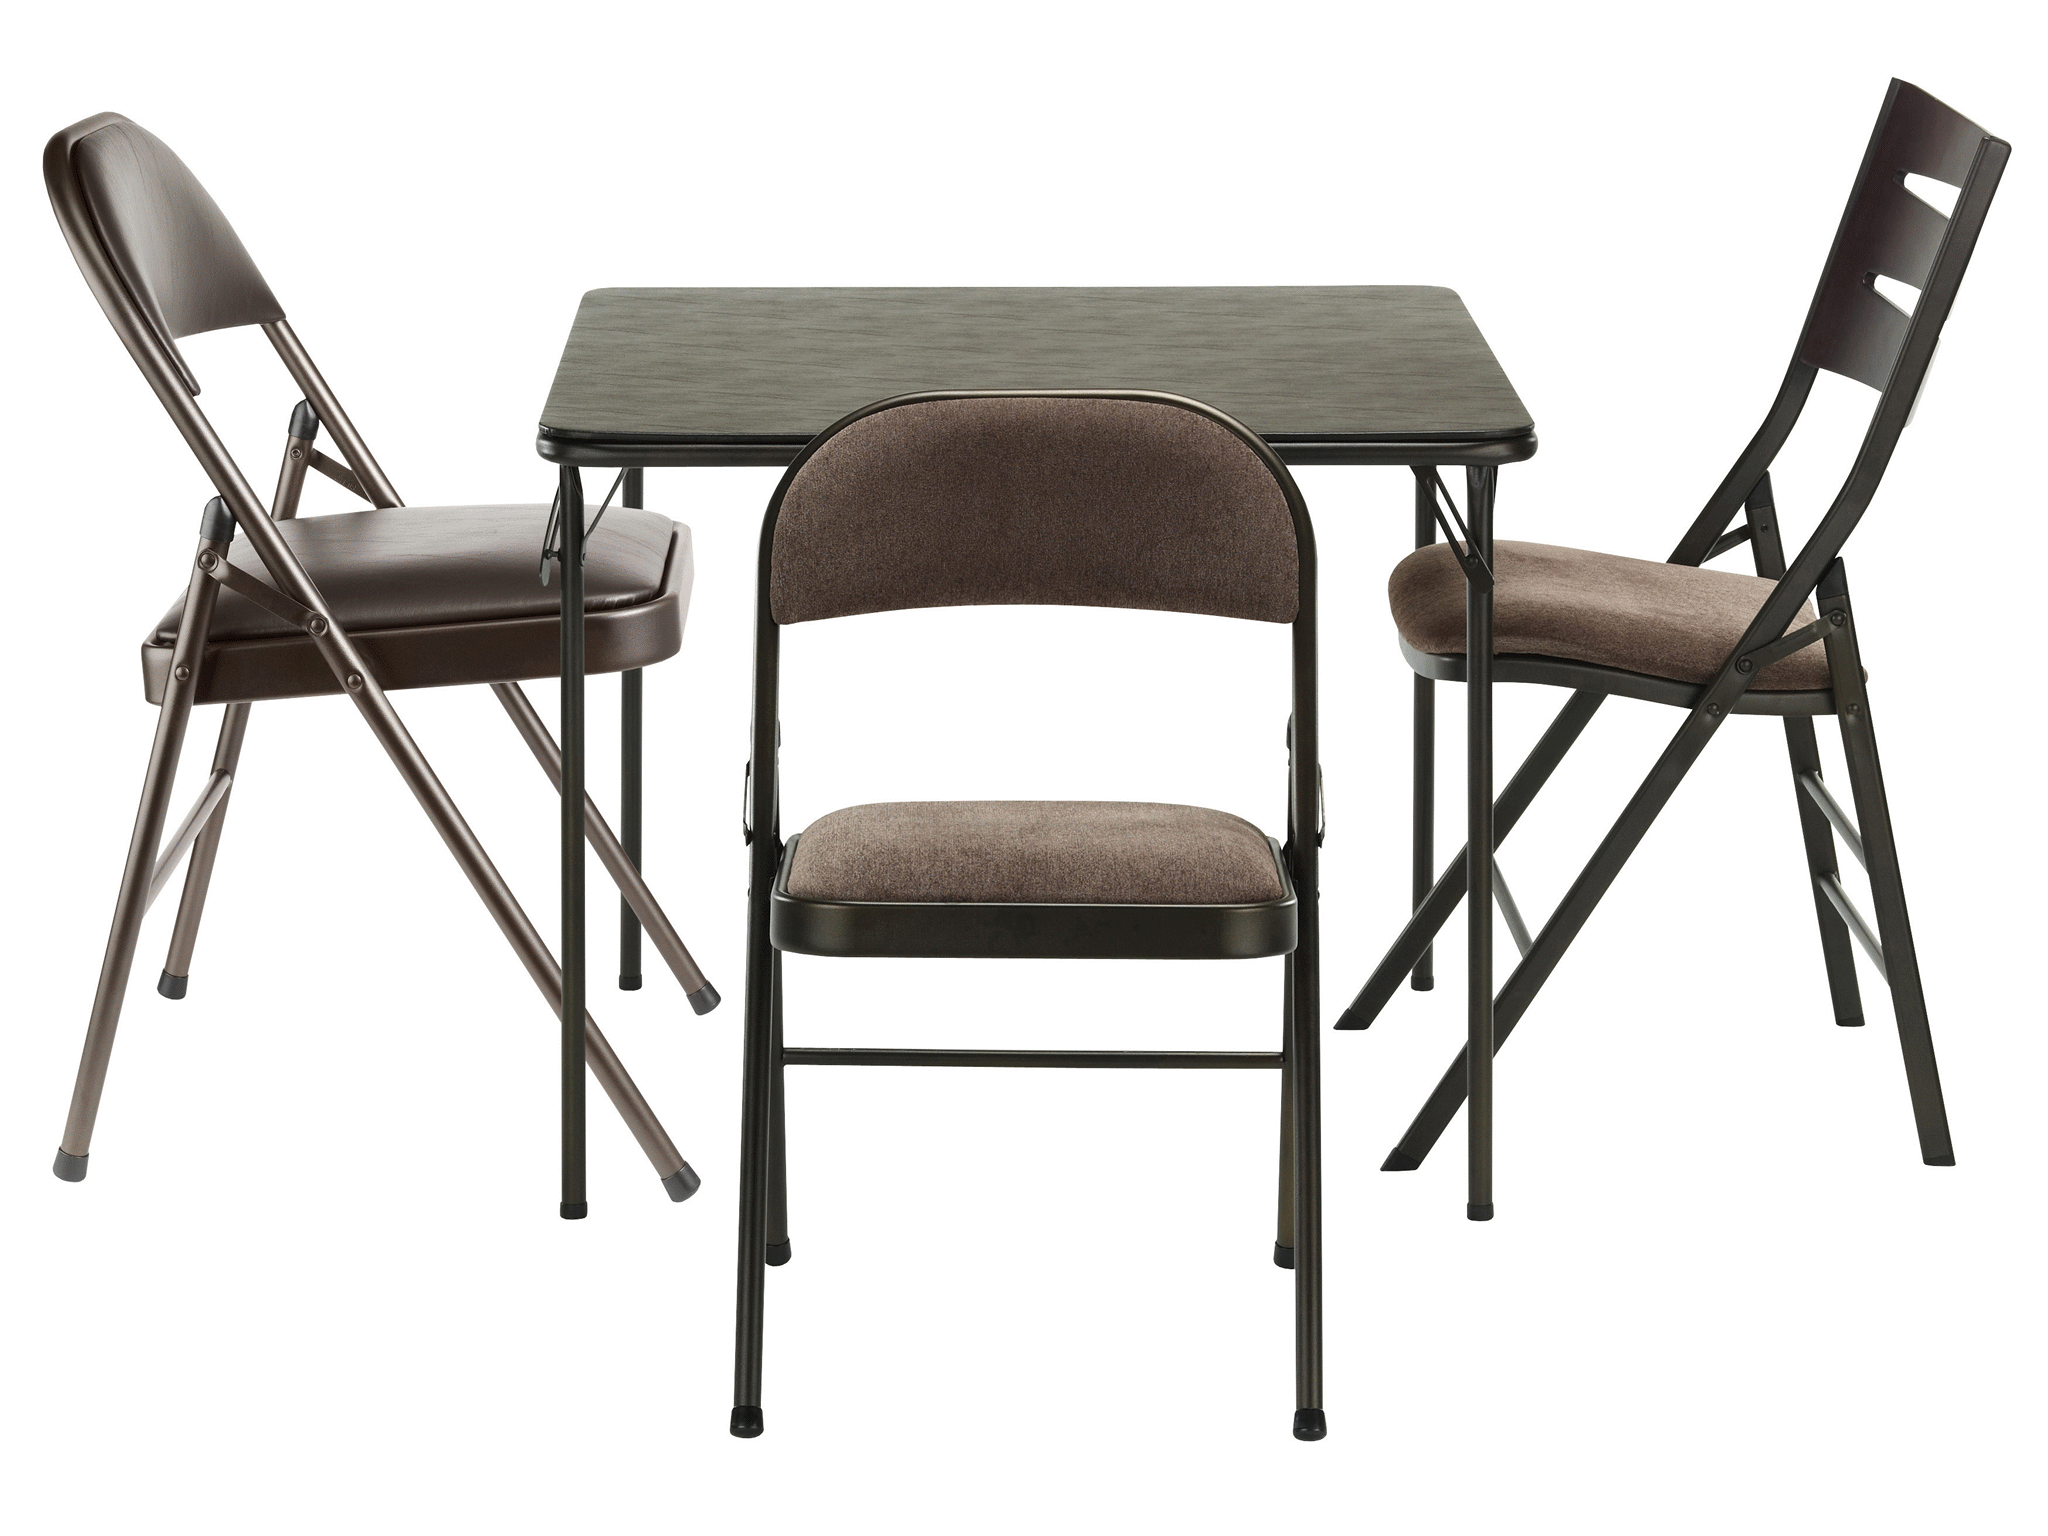 Meco Sudden fort Square folding table 34 x 34